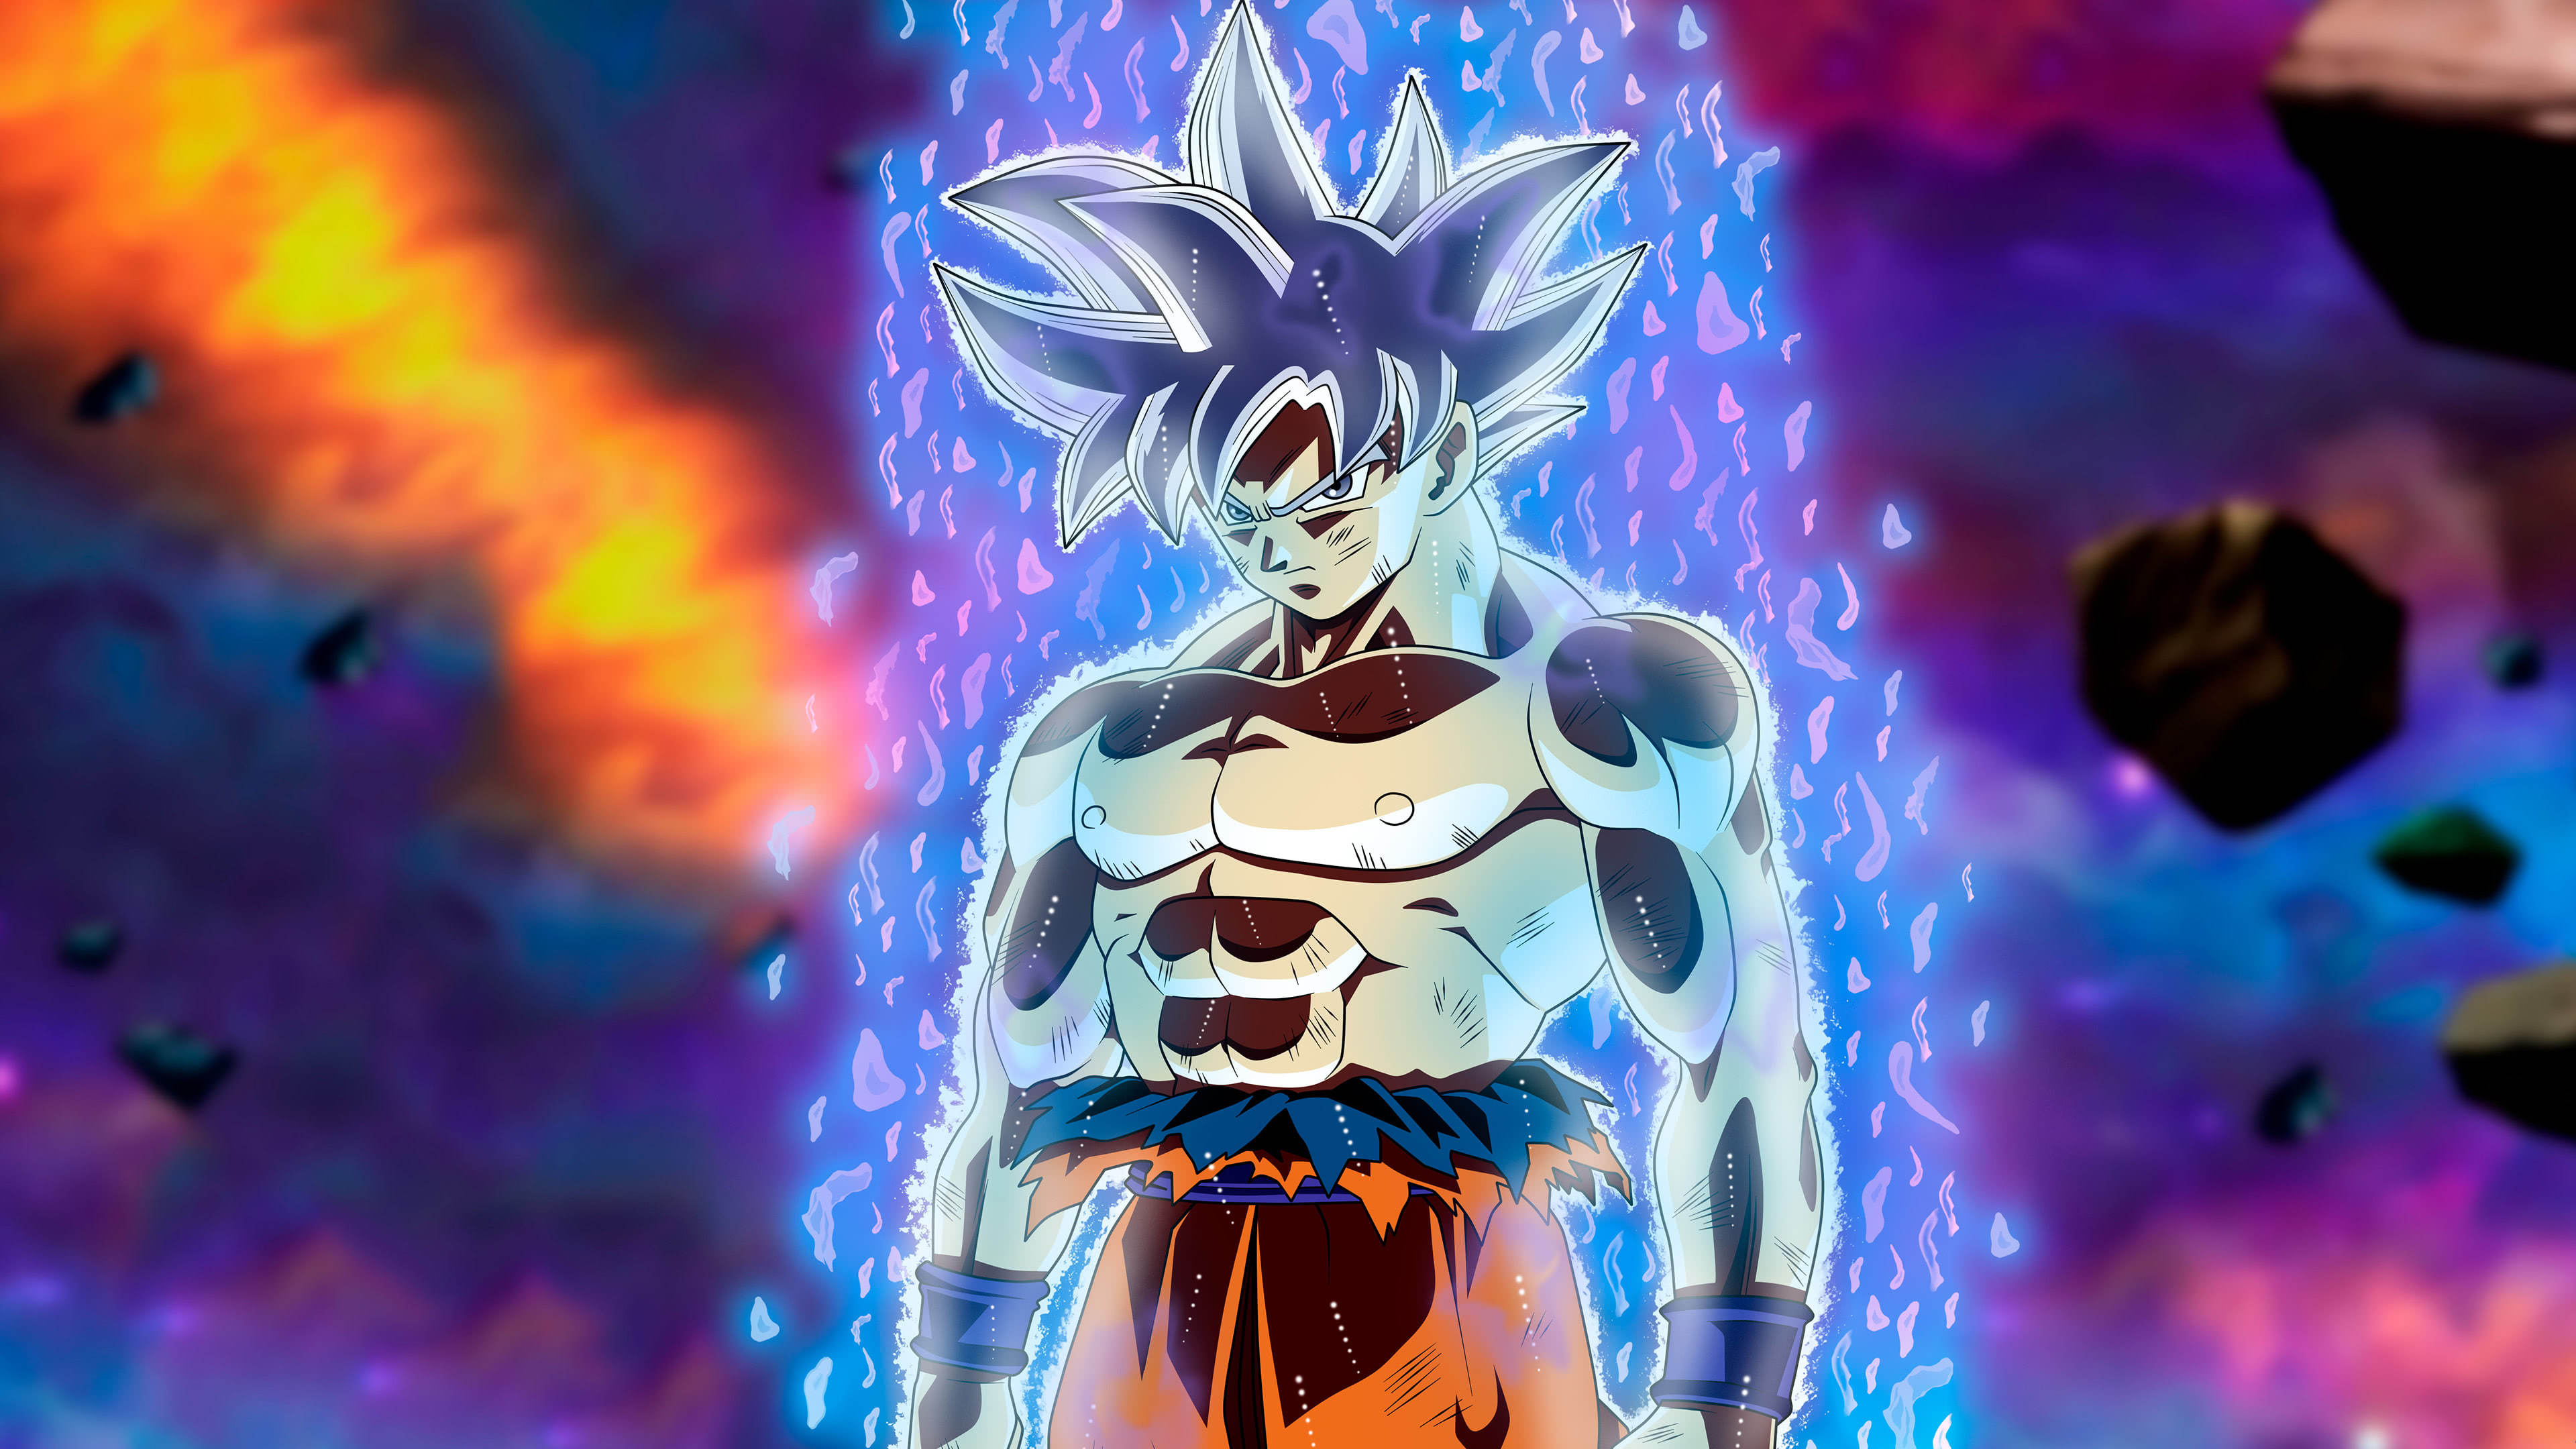 Dragon Ball Super Ultra Instinct Goku Uhd 4k Wallpaper Goku Ultra Instinct Wallpaper 4k 3840x2160 Wallpaper Teahub Io